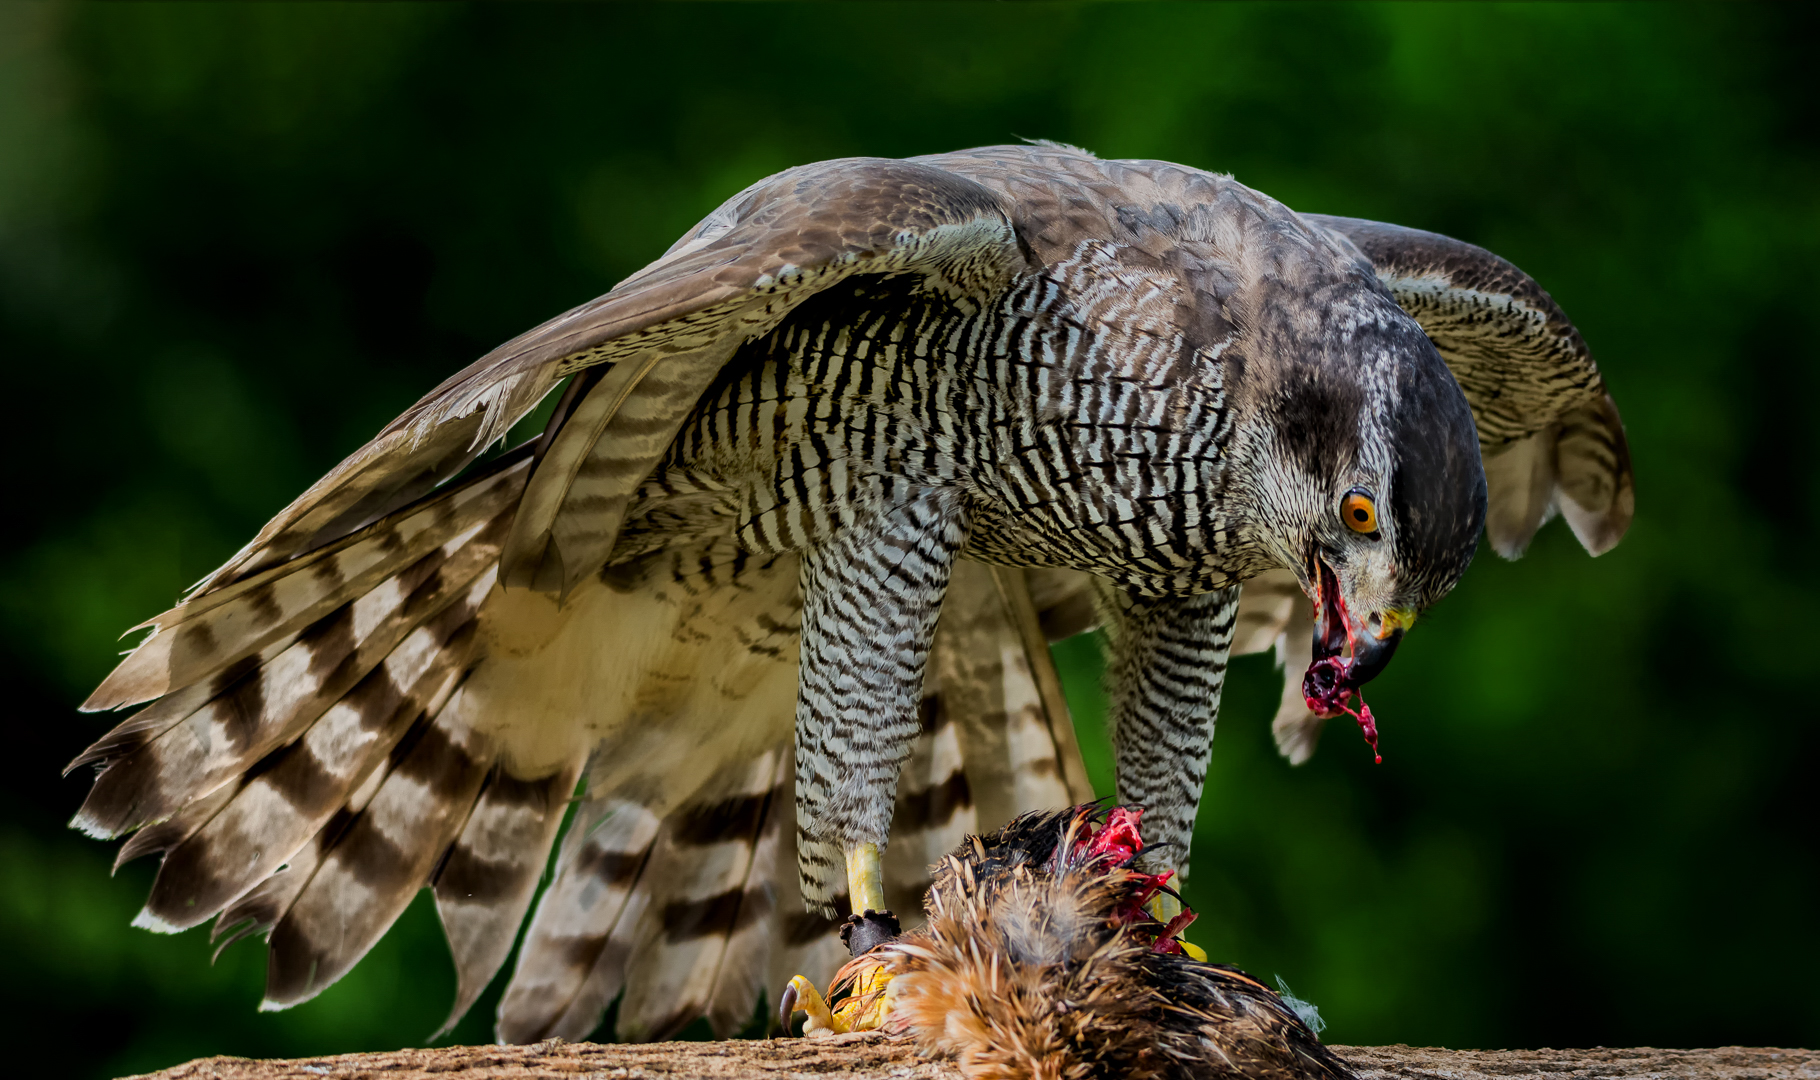 Goshawk Feeding on Baited Prey